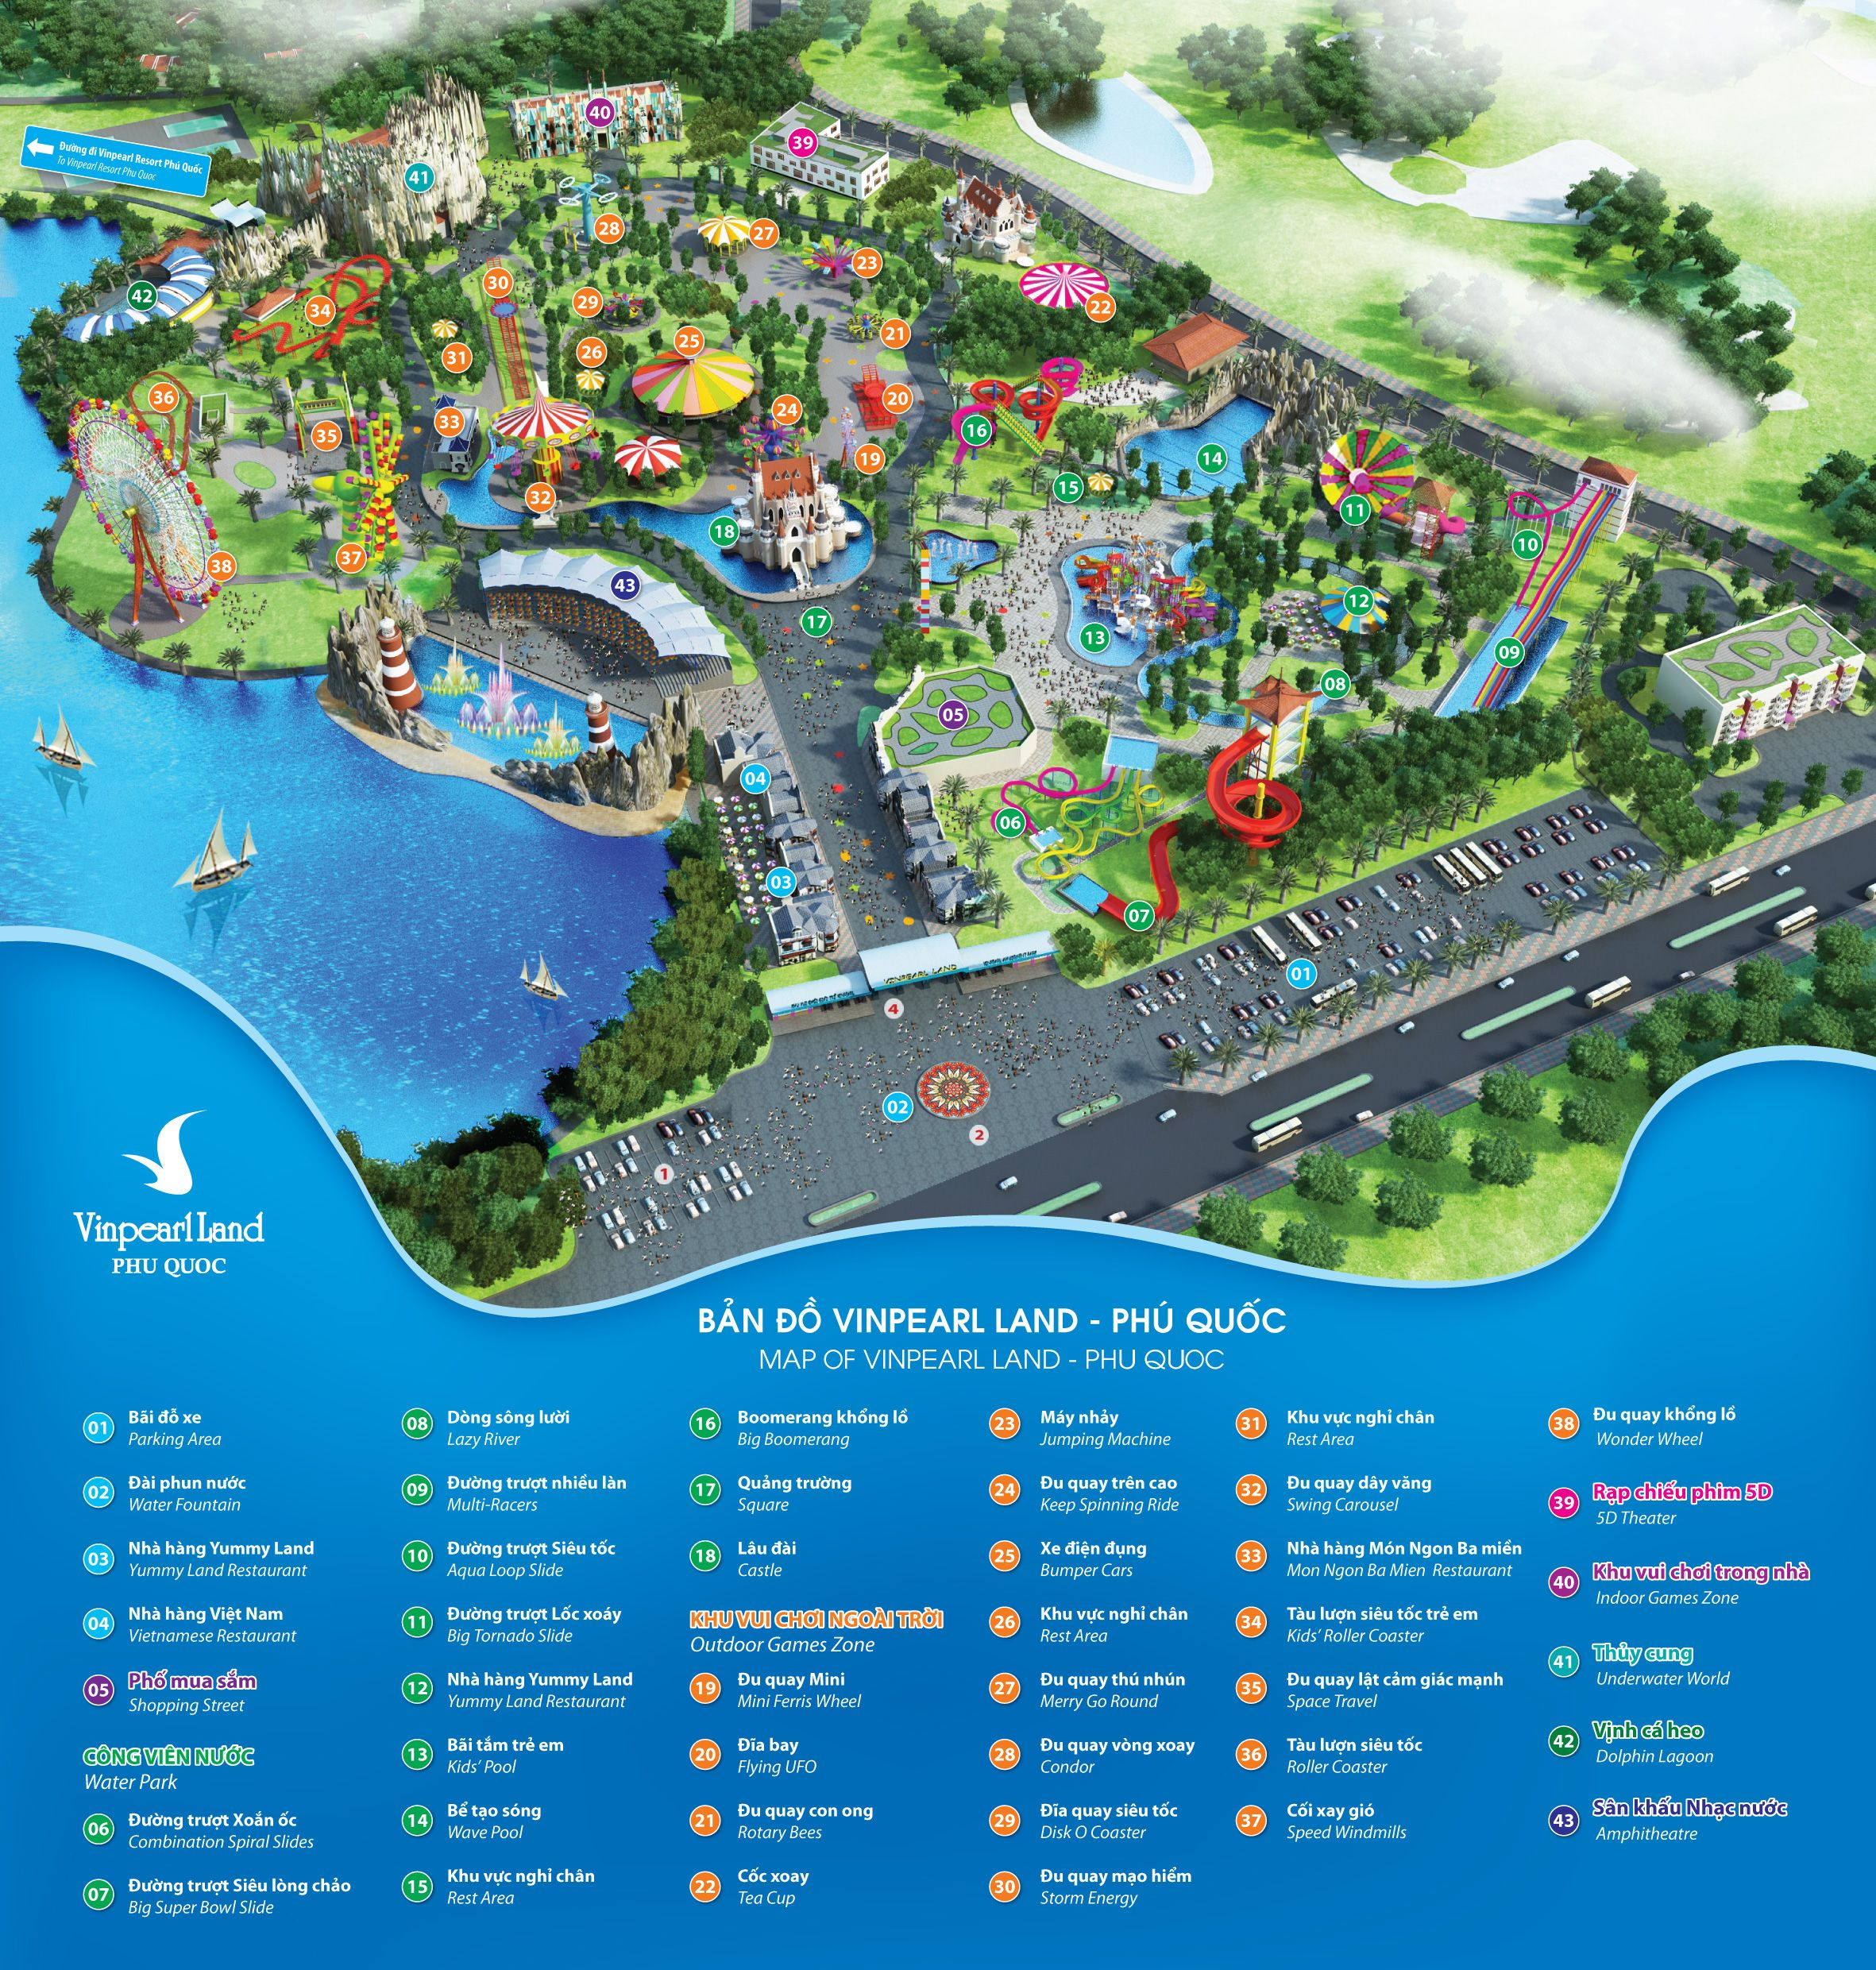 ... Vinpearl Land, courtesy of Vinpearl Resort. You can view the full map